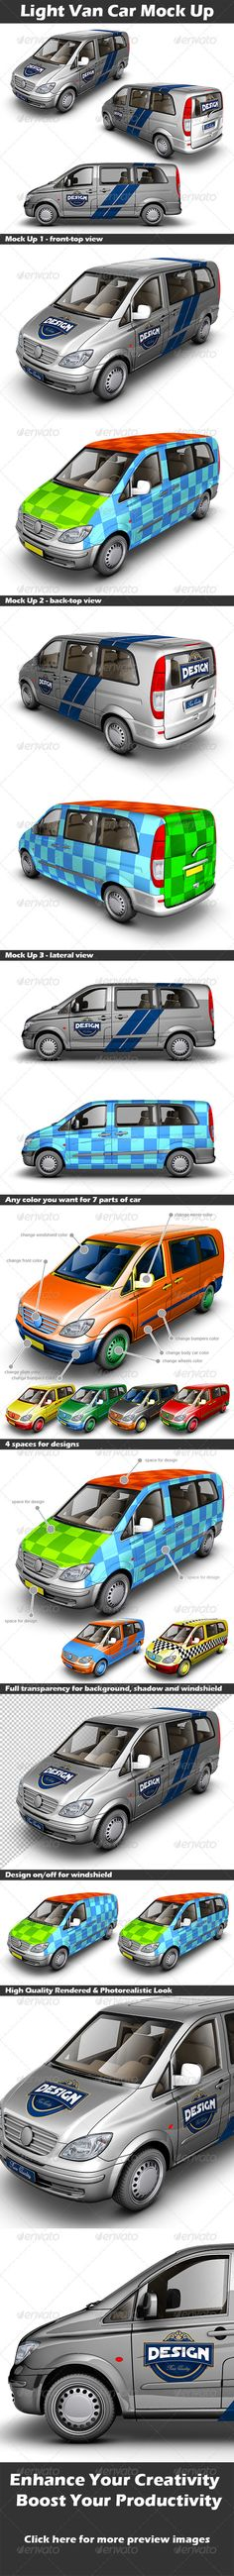 Light Van Car Mock Up — Photoshop PSD #midibuses #MUV • Available here → https://graphicriver.net/item/light-van-car-mock-up/3916351?ref=pxcr